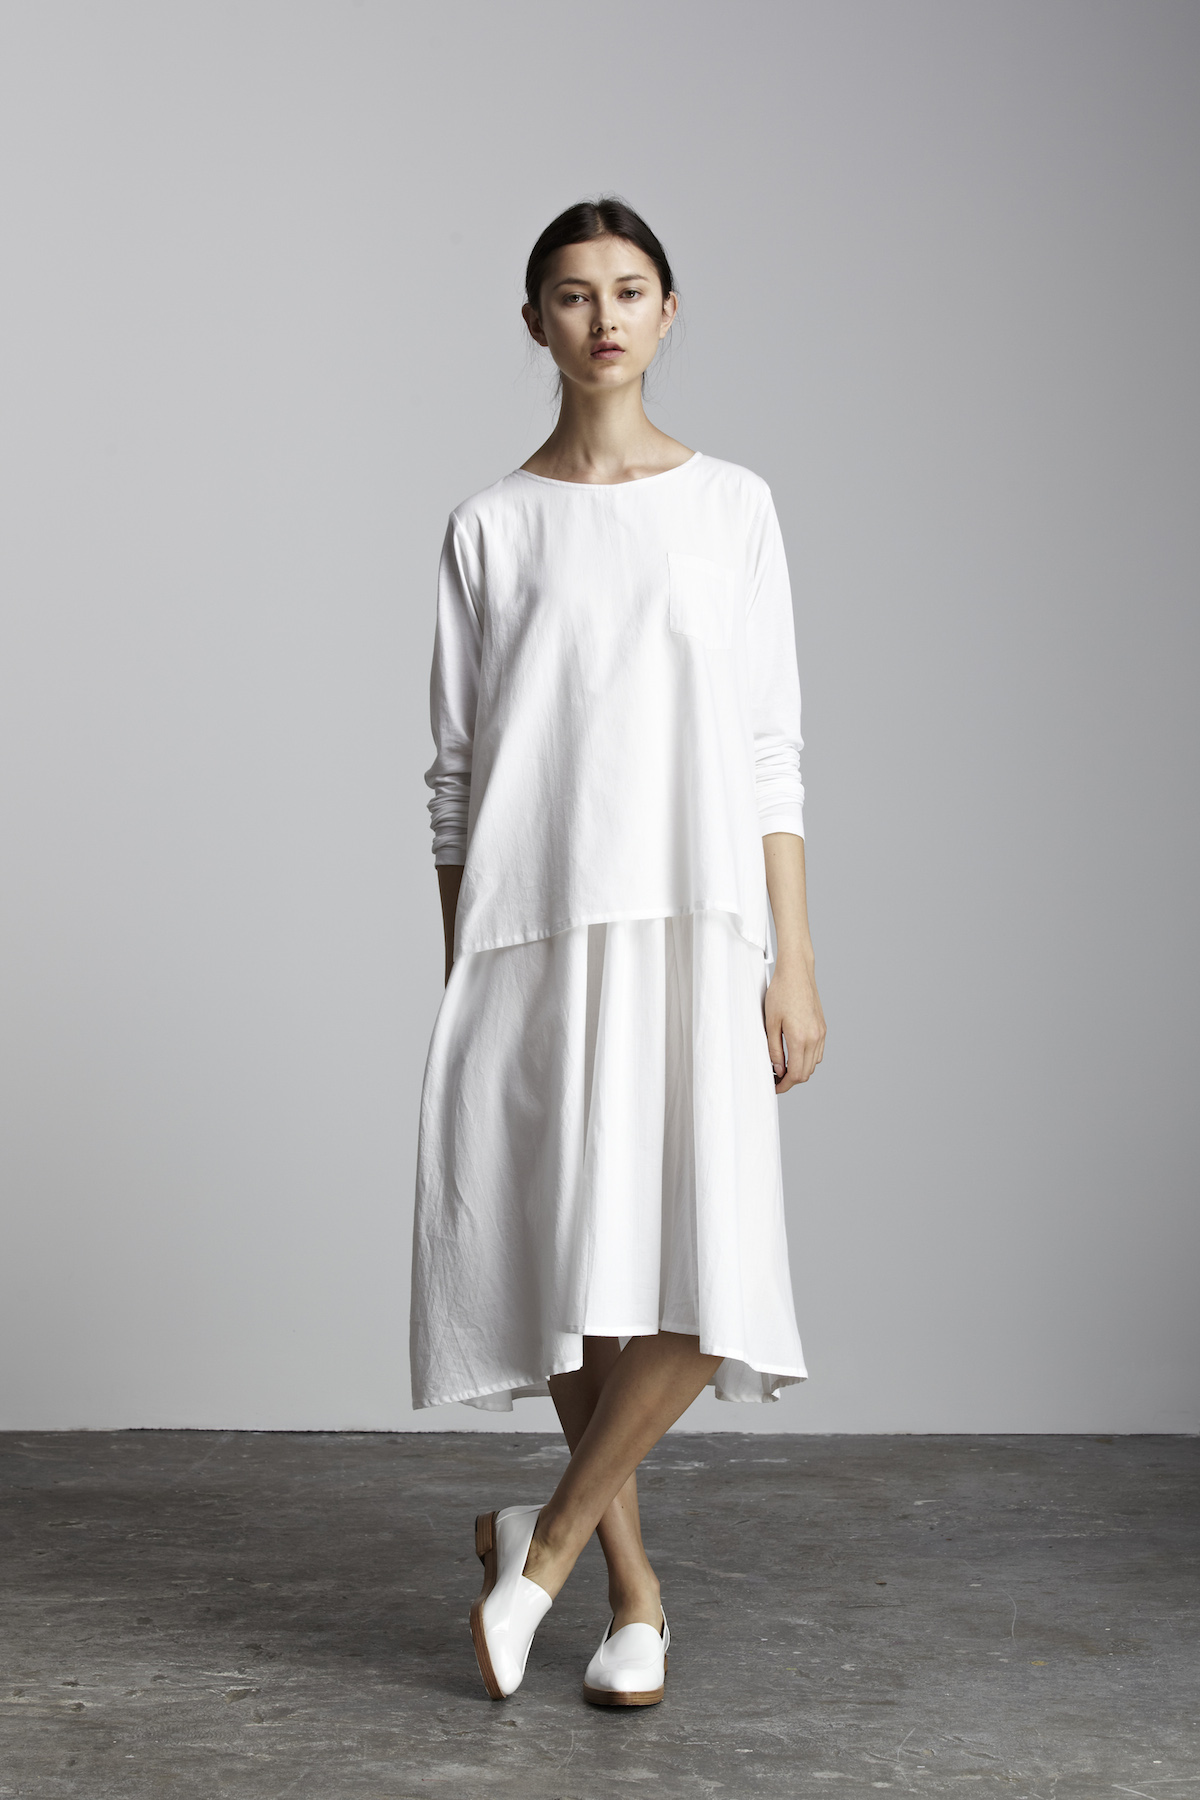 Natural organic clothes are not all created equal. Shop organic cotton clothing from Blue Canoe for a natural difference.